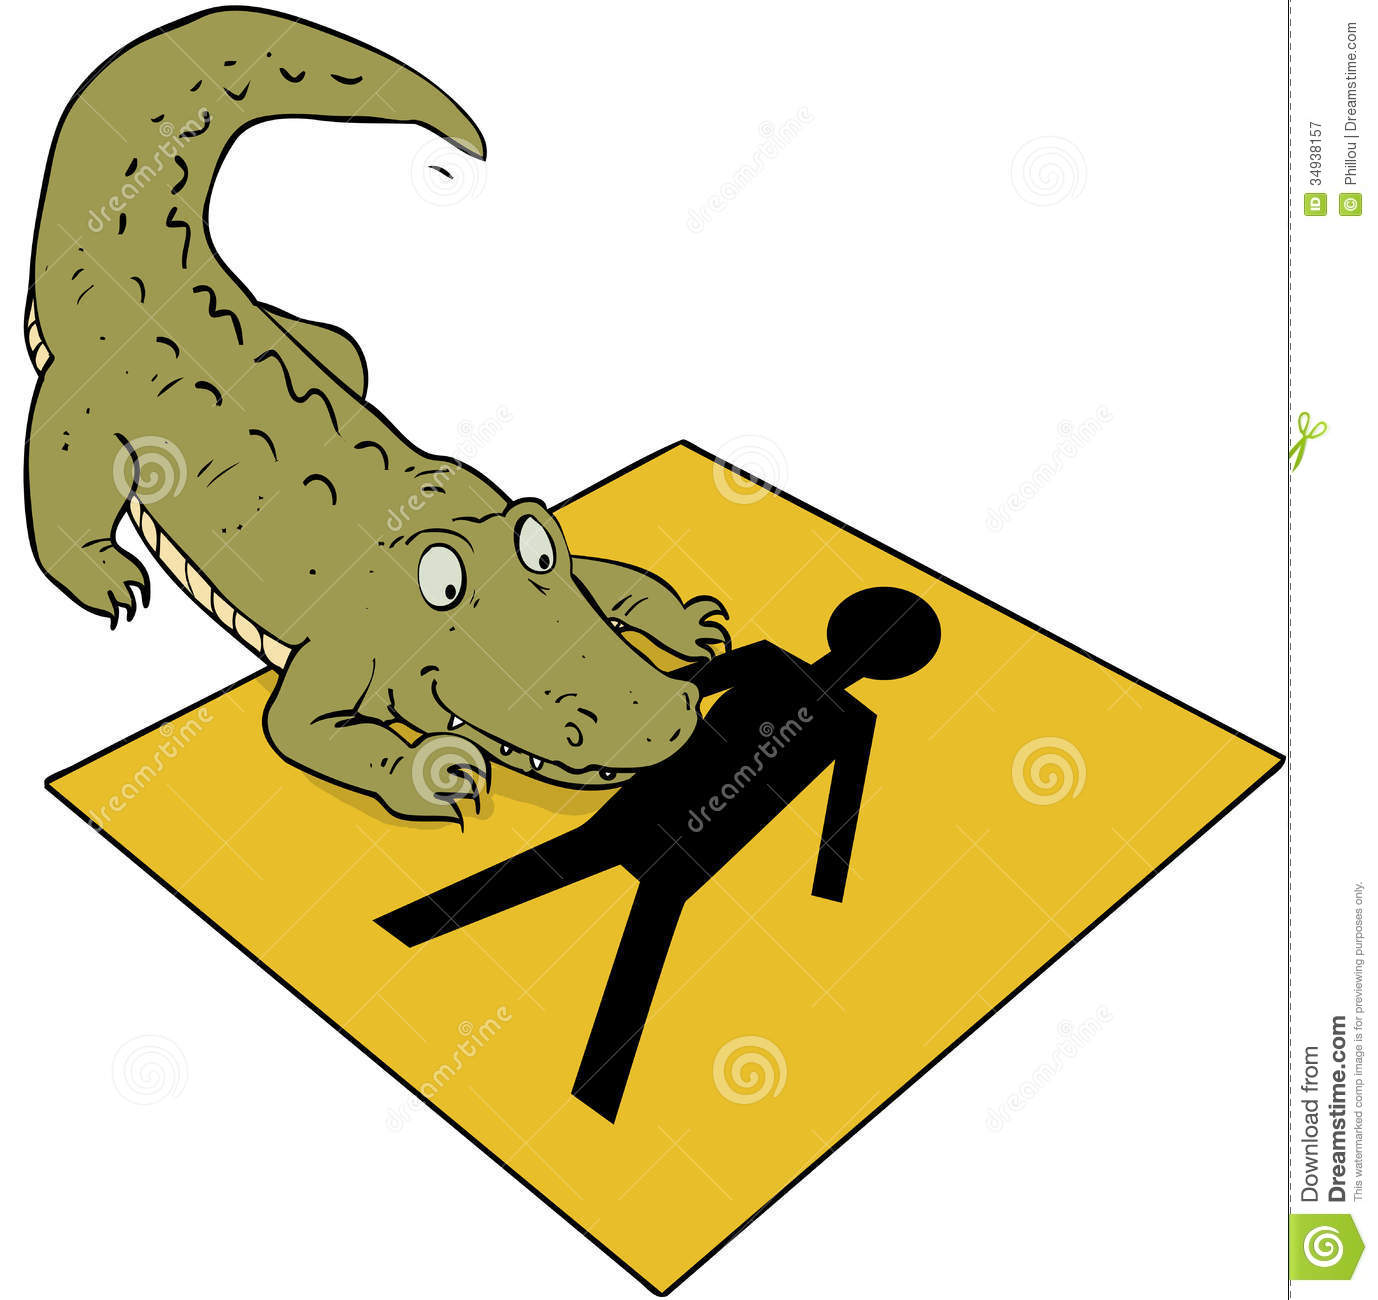 Alligator Clip Symbol Crocodile Beware Sign Royalty Free Stock Photography